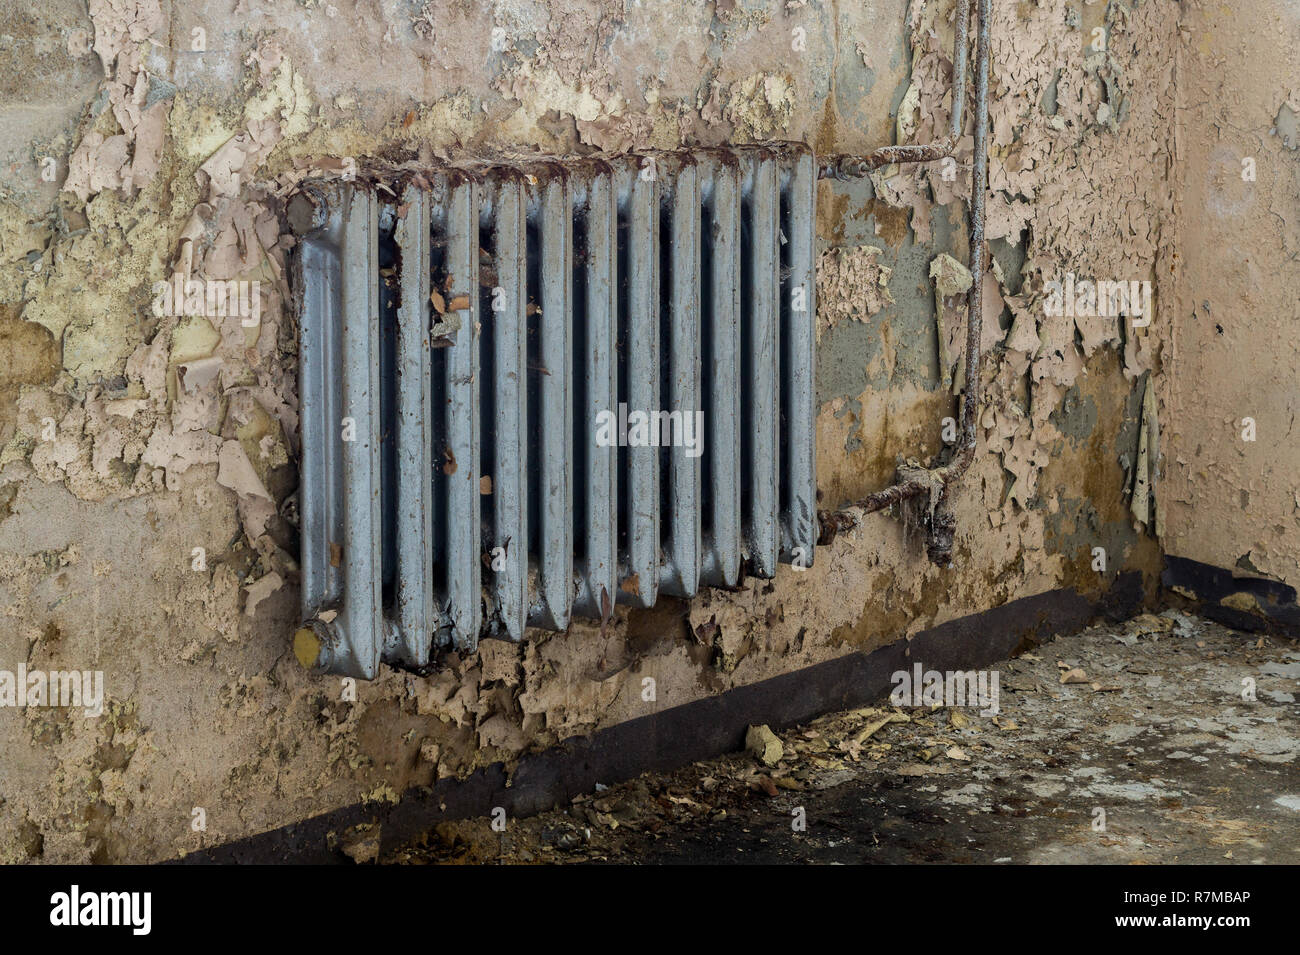 Old heating after water damage - Stock Image